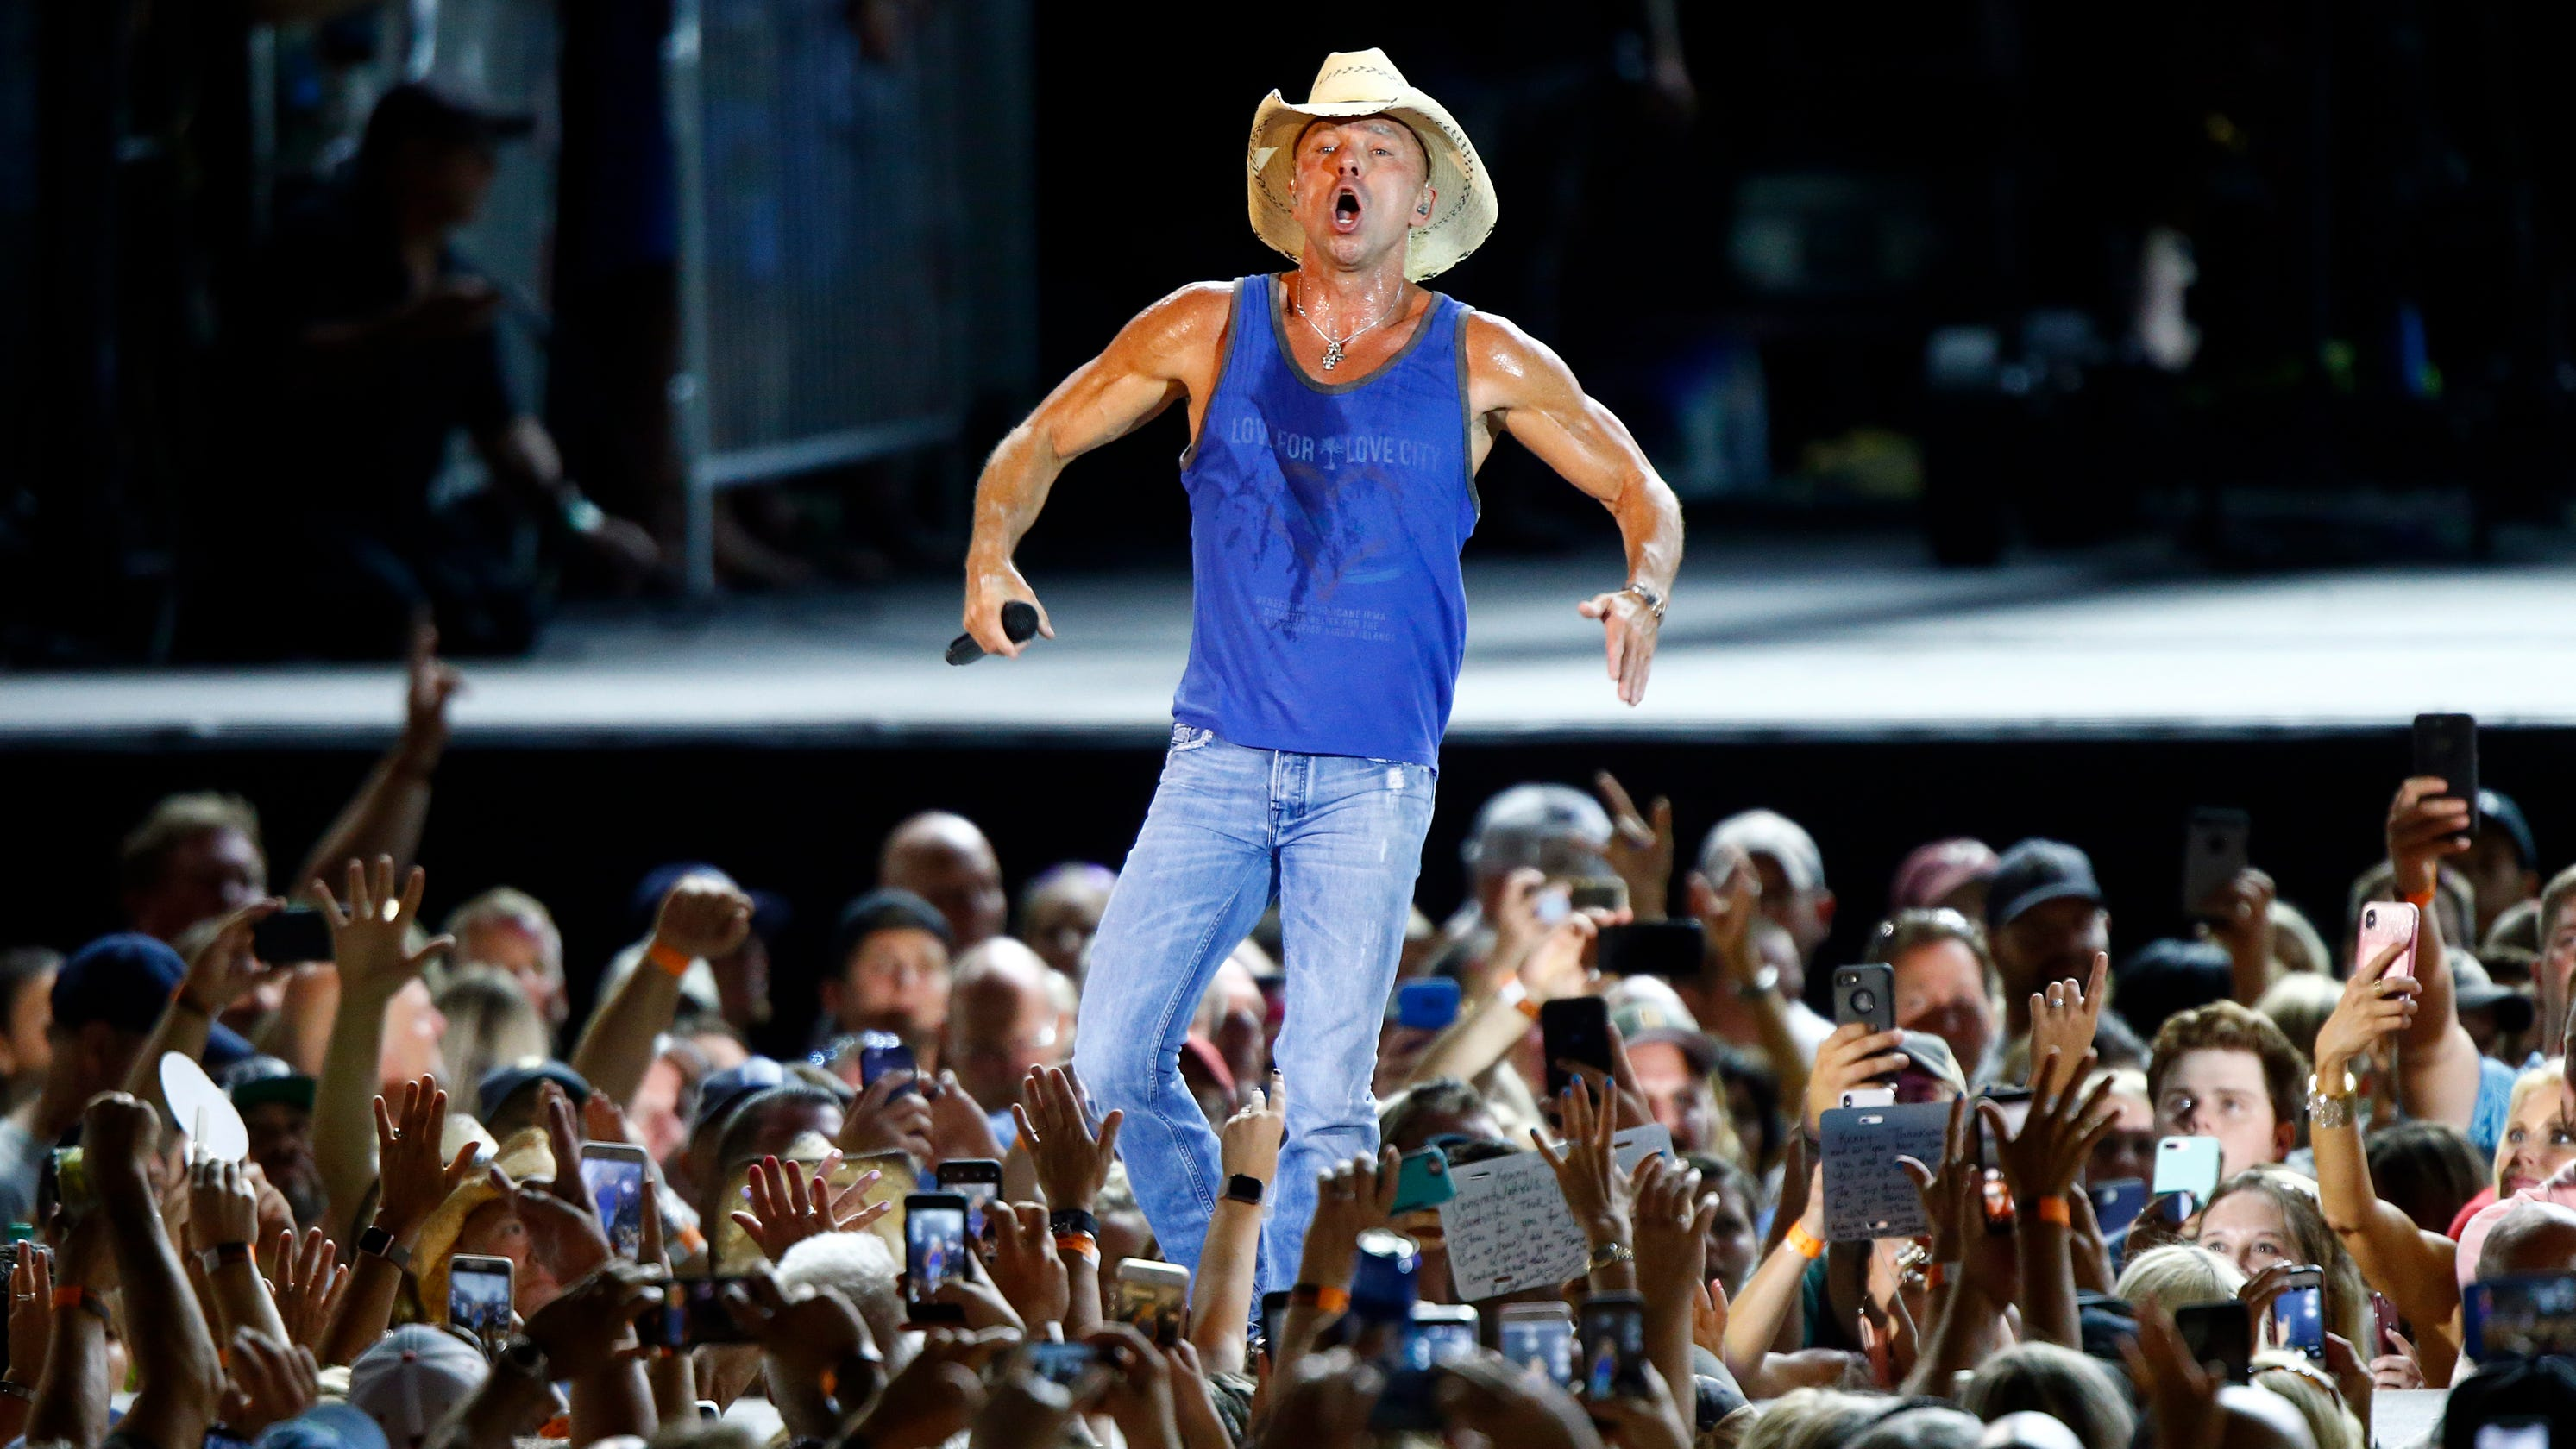 Kenny Chesney at MetLife Stadium: Everything you need to know